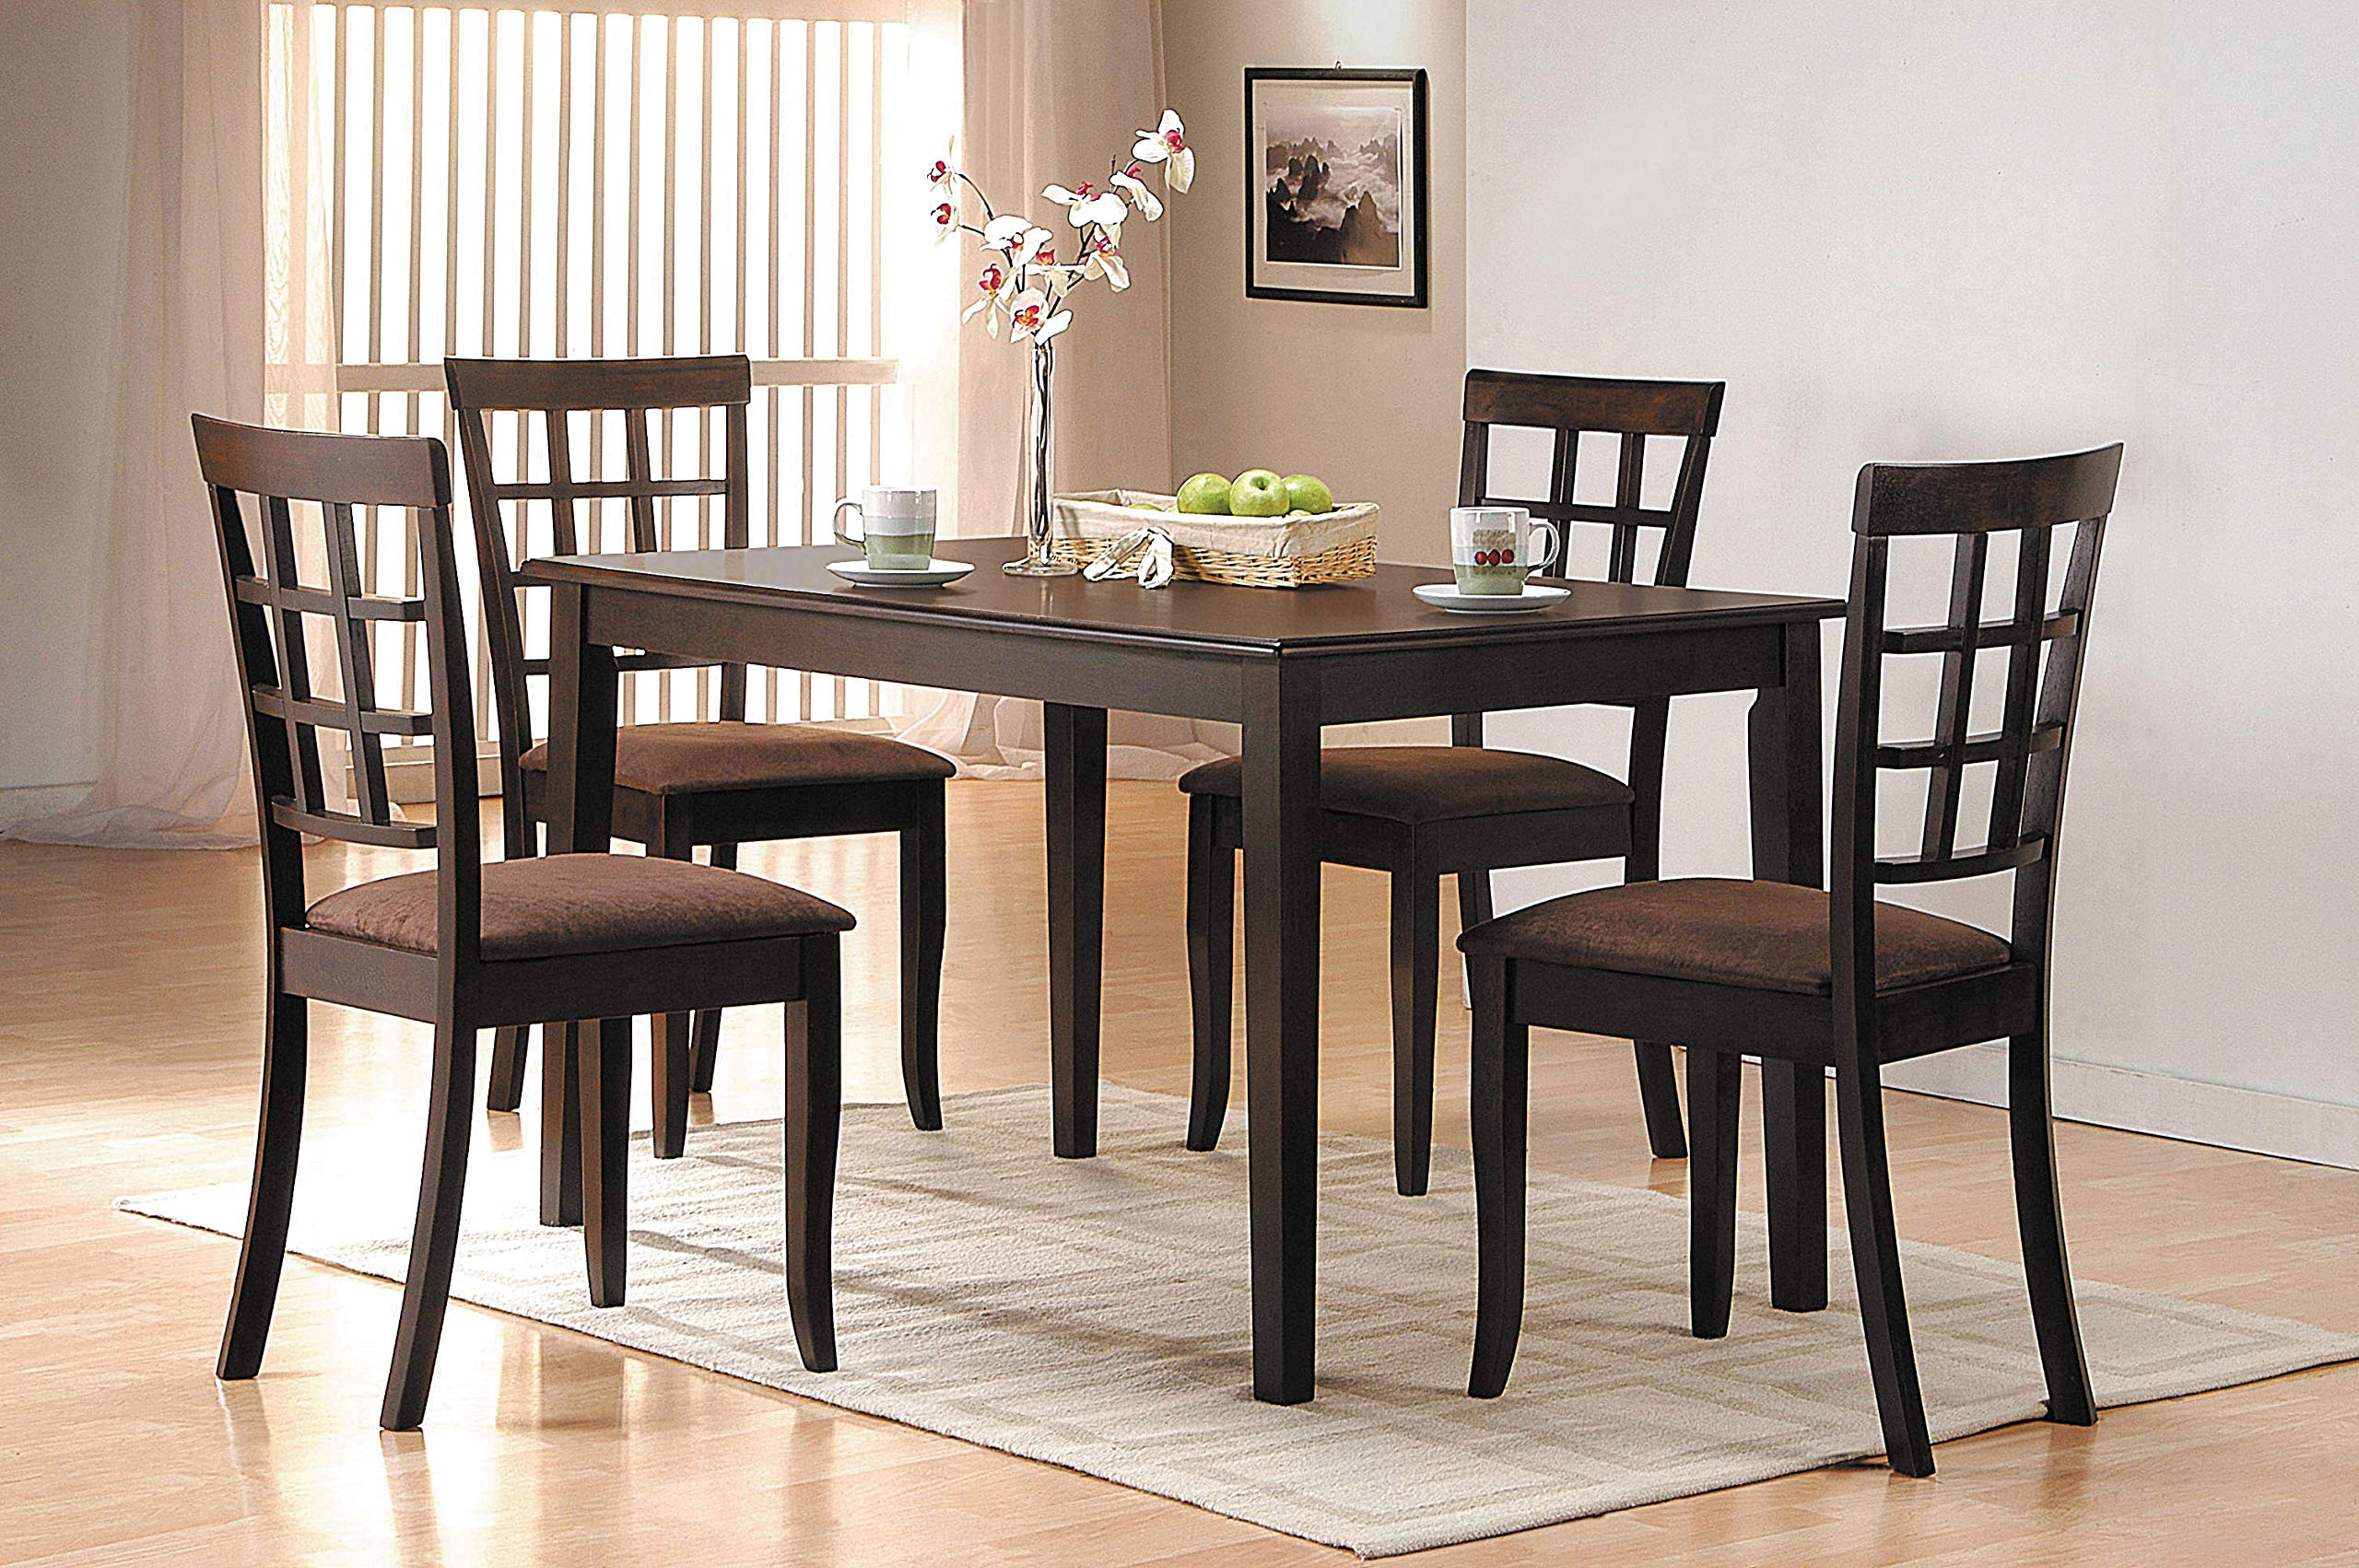 acme 6850 Cardiff Espresso Finish Dining Table by acme